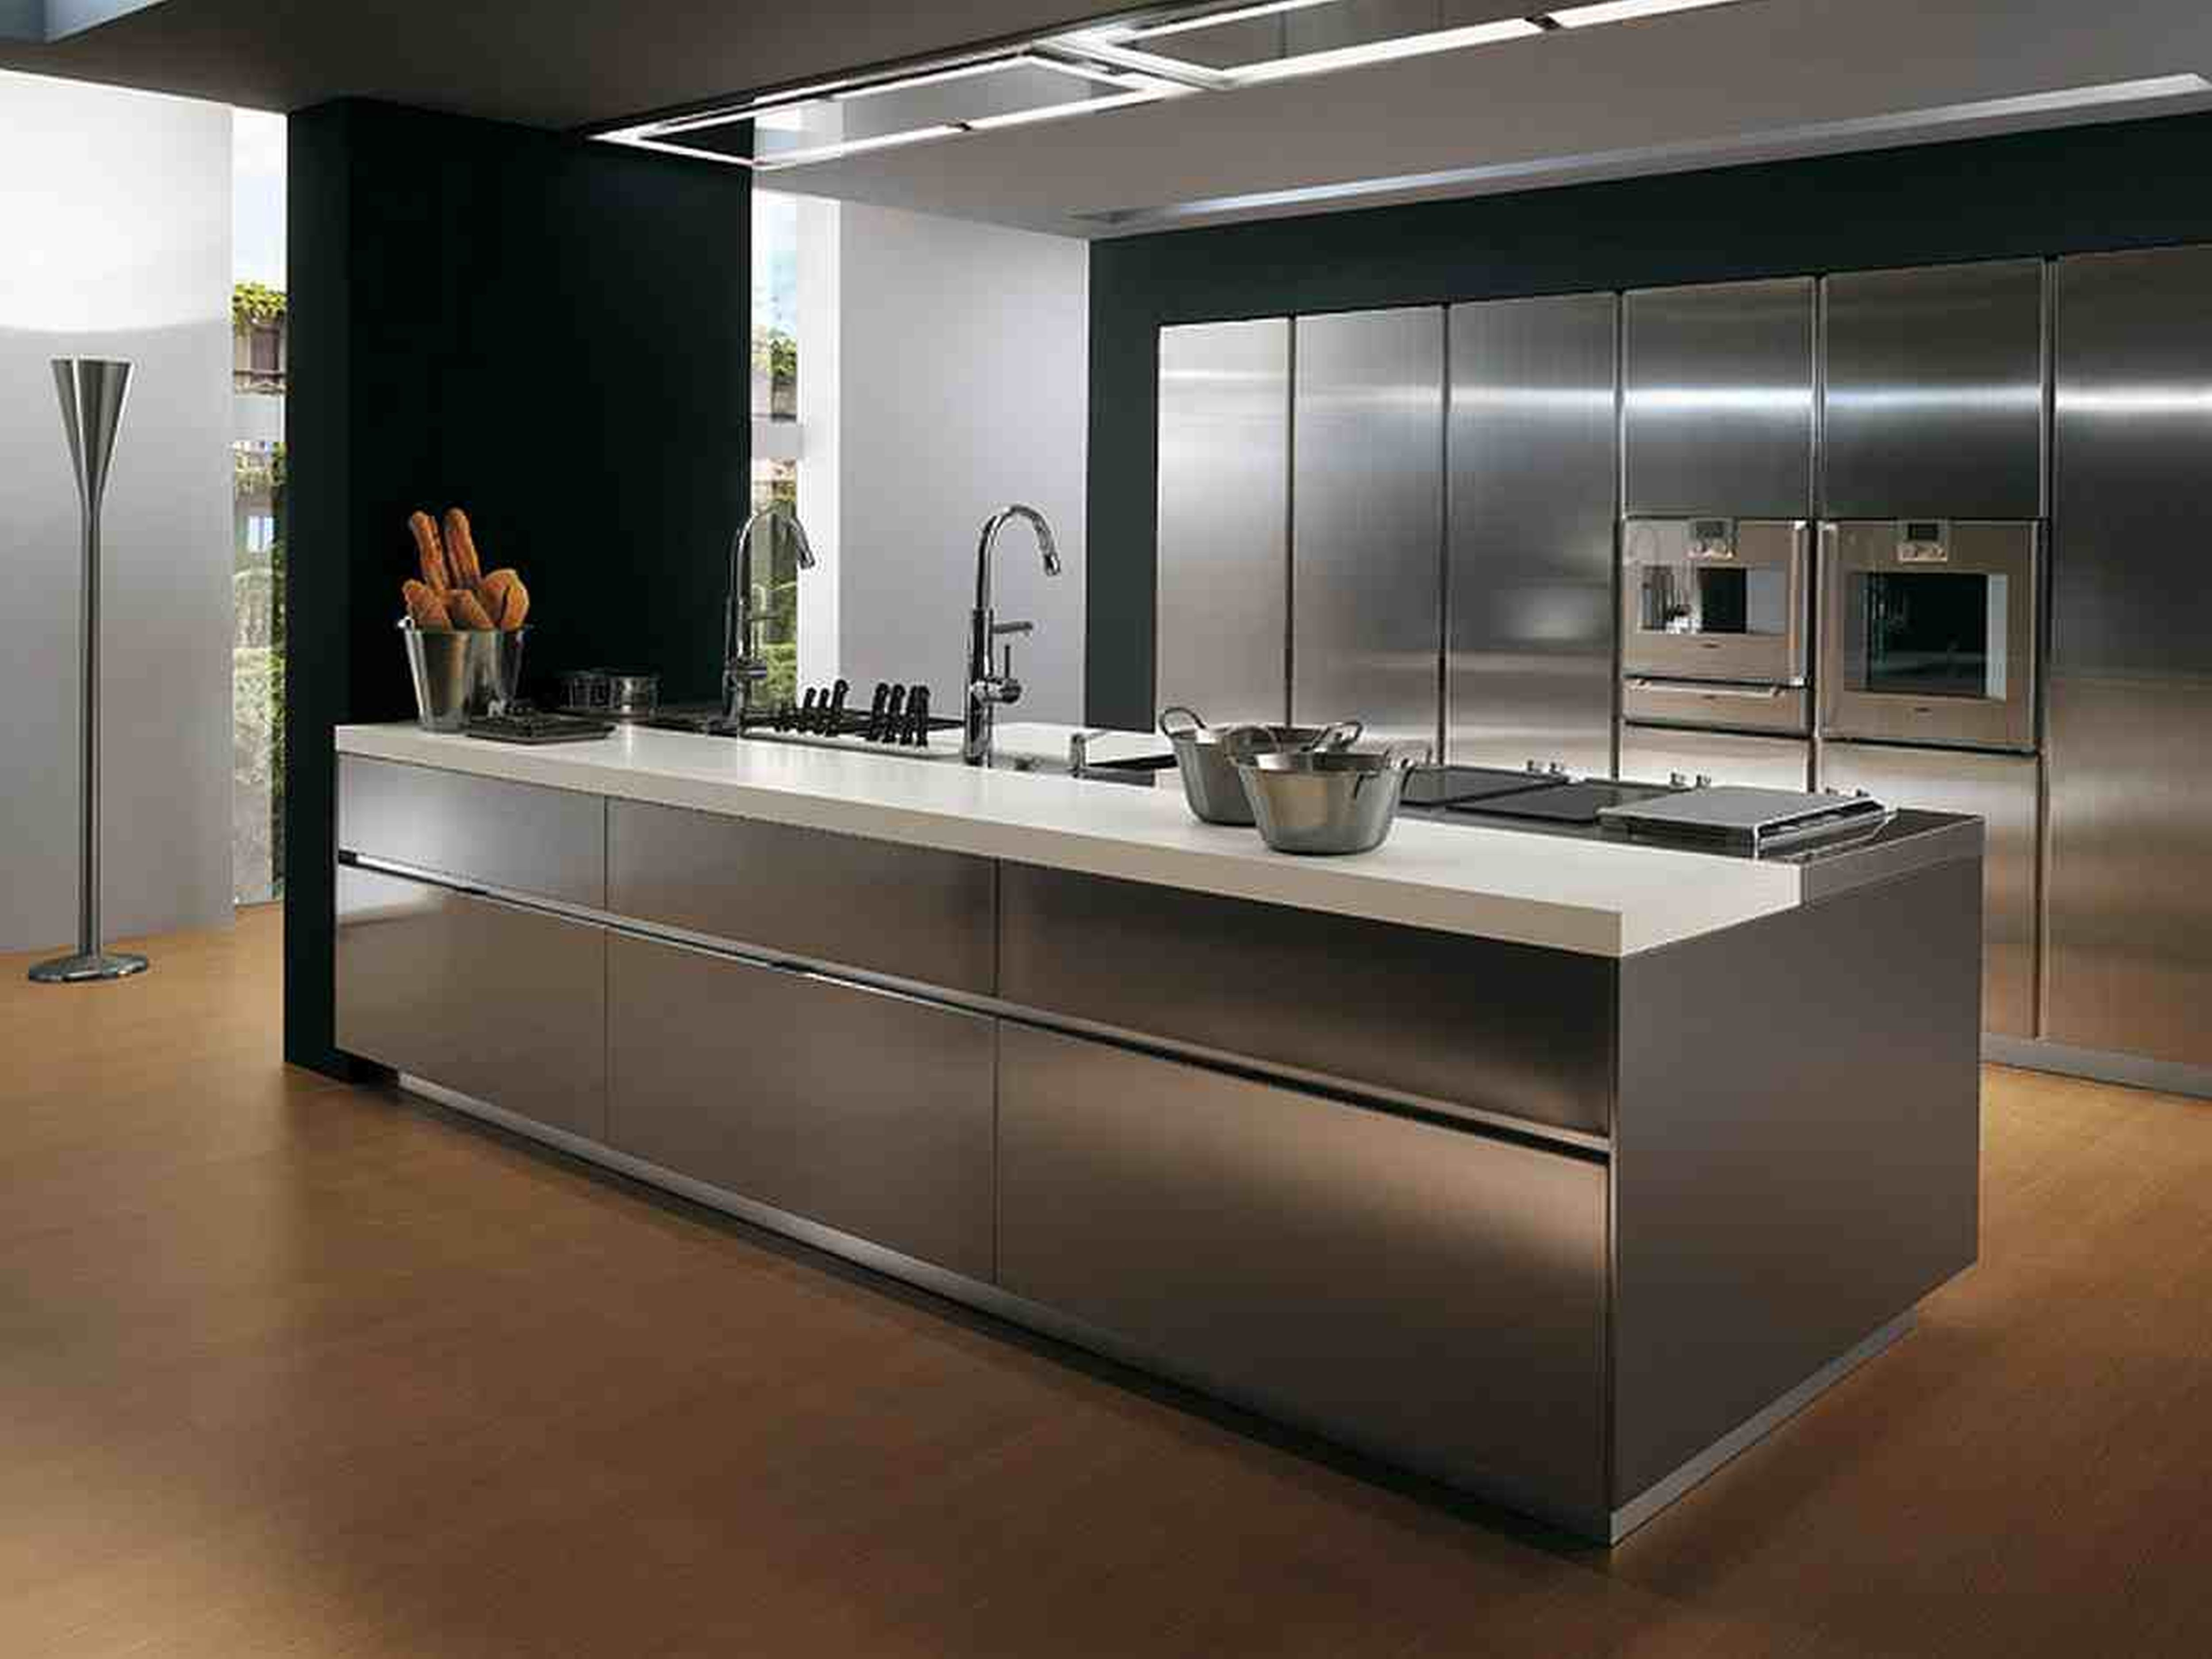 Stainless Steel Cabinets And Countertops Stainless Steel Countertops Ikea Home Decor